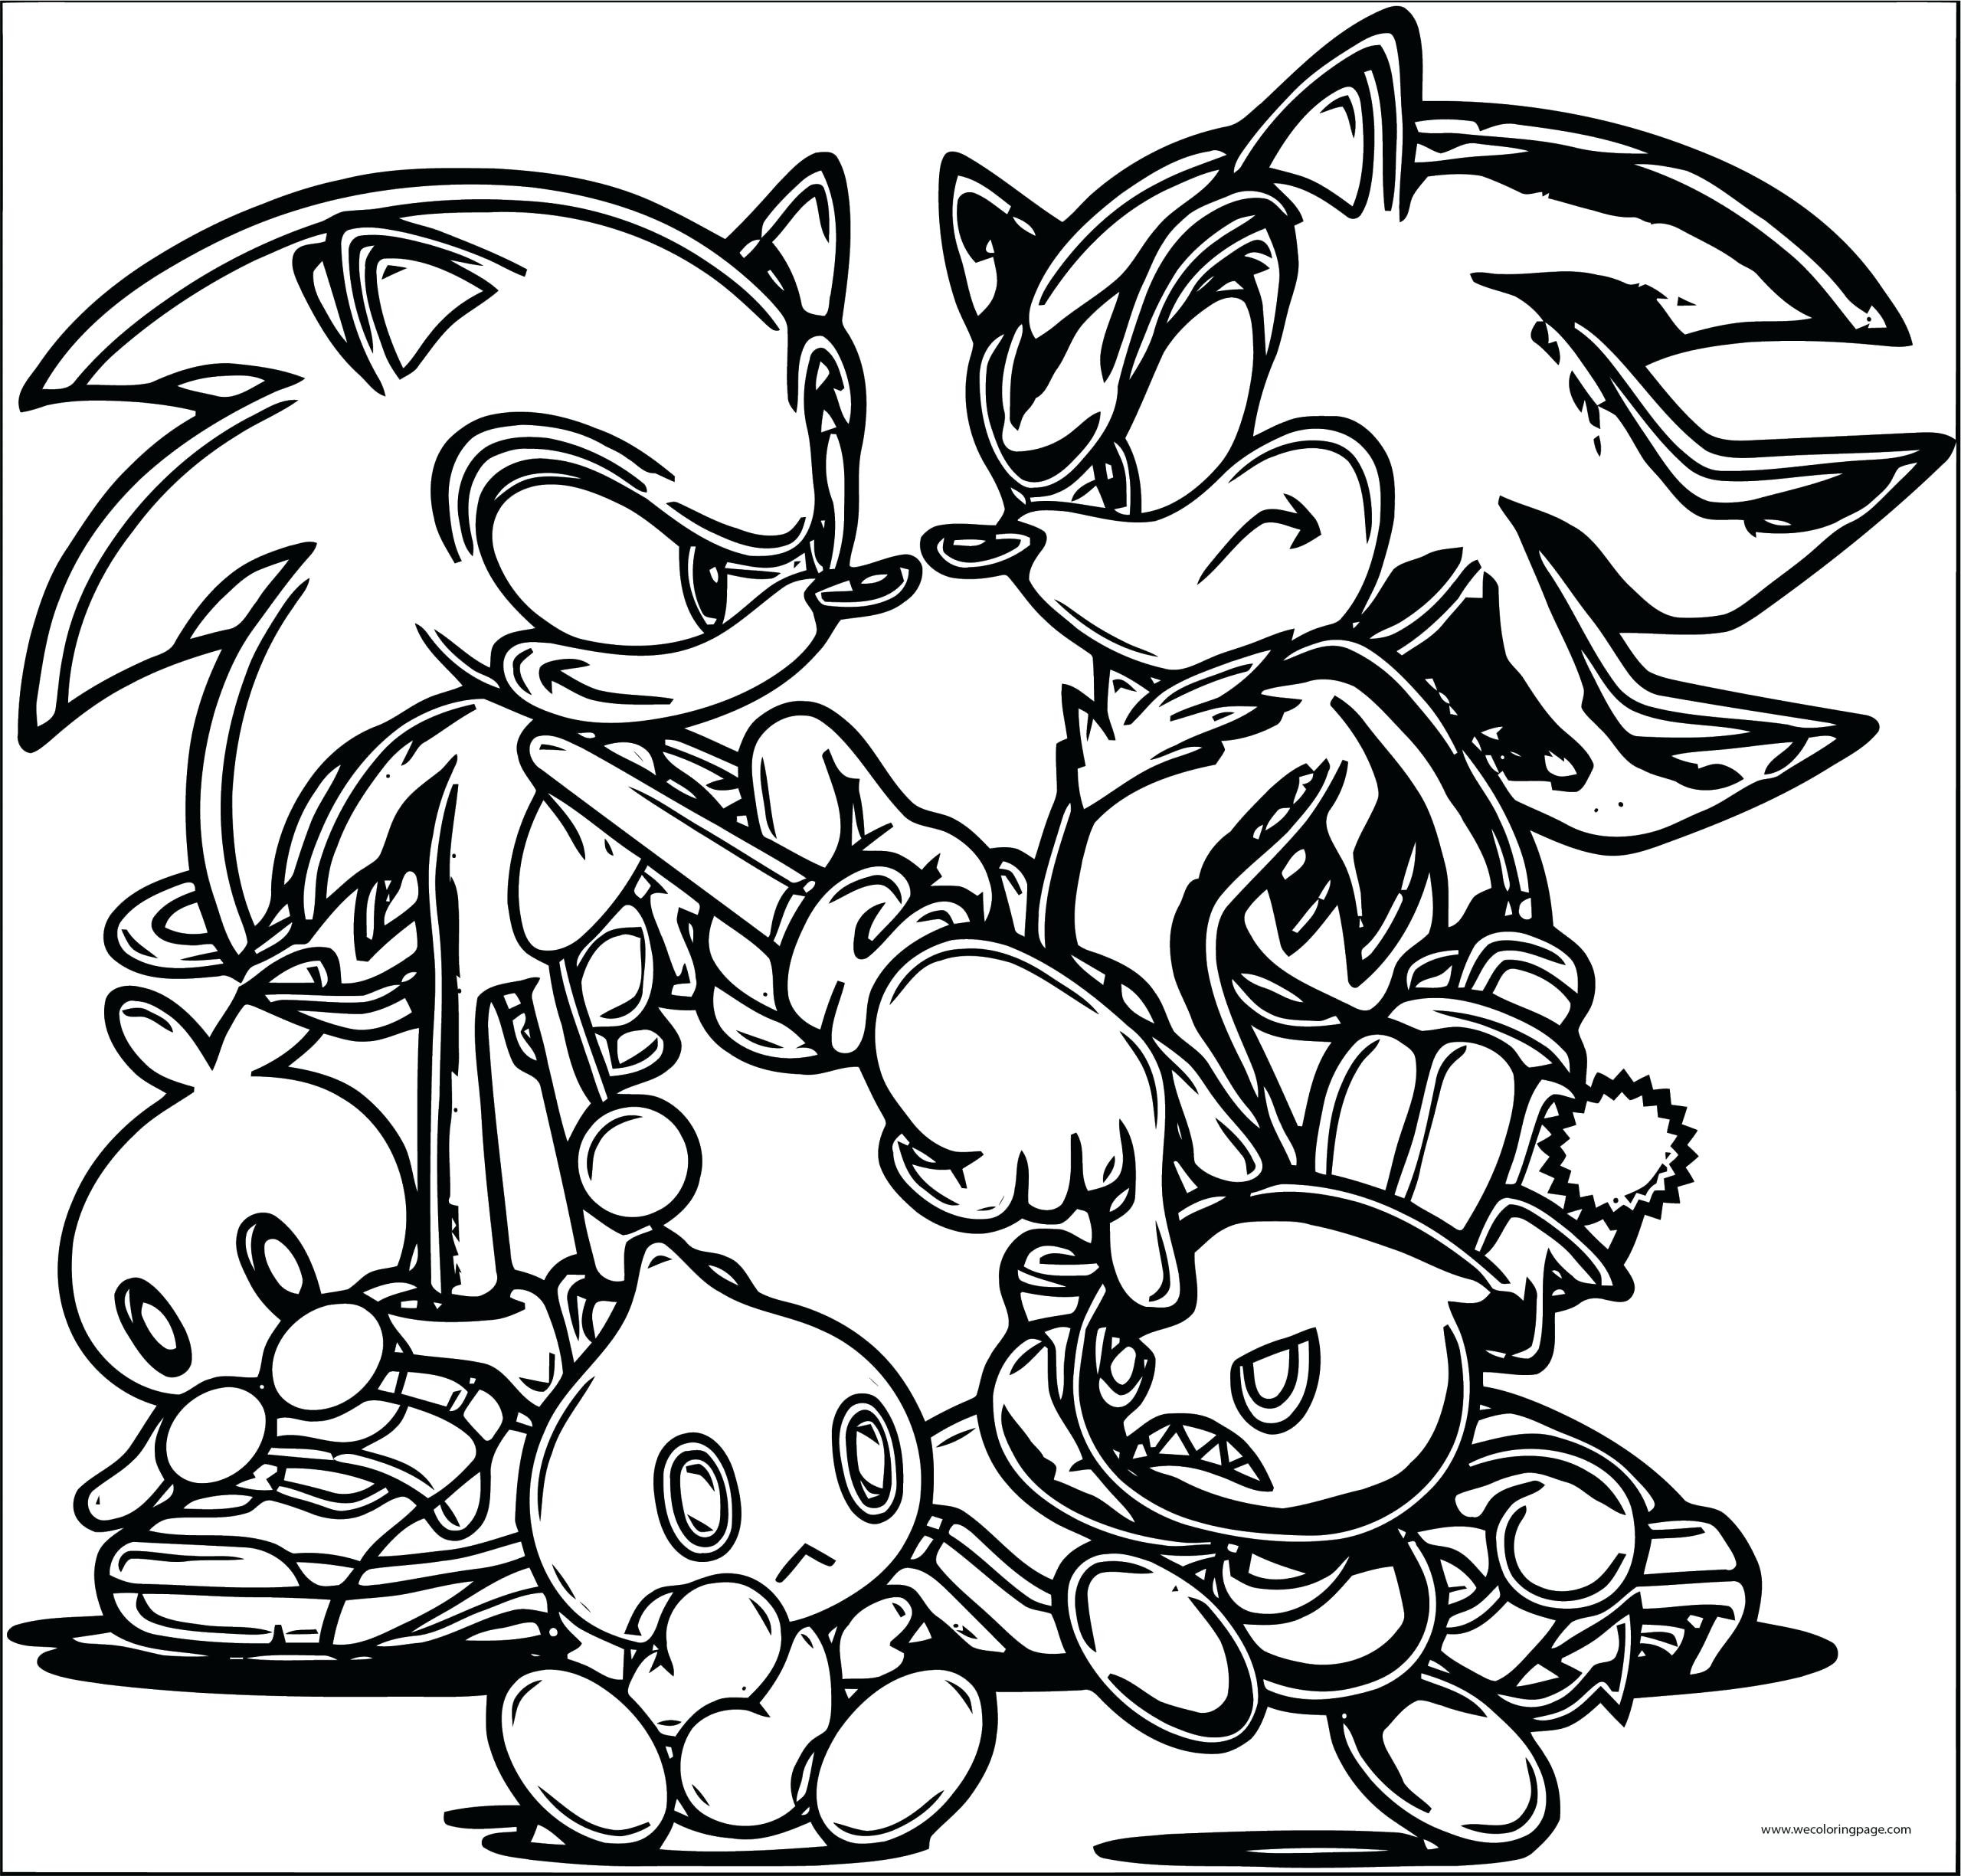 Shadow Sonic Coloring Pages - Coloring Home